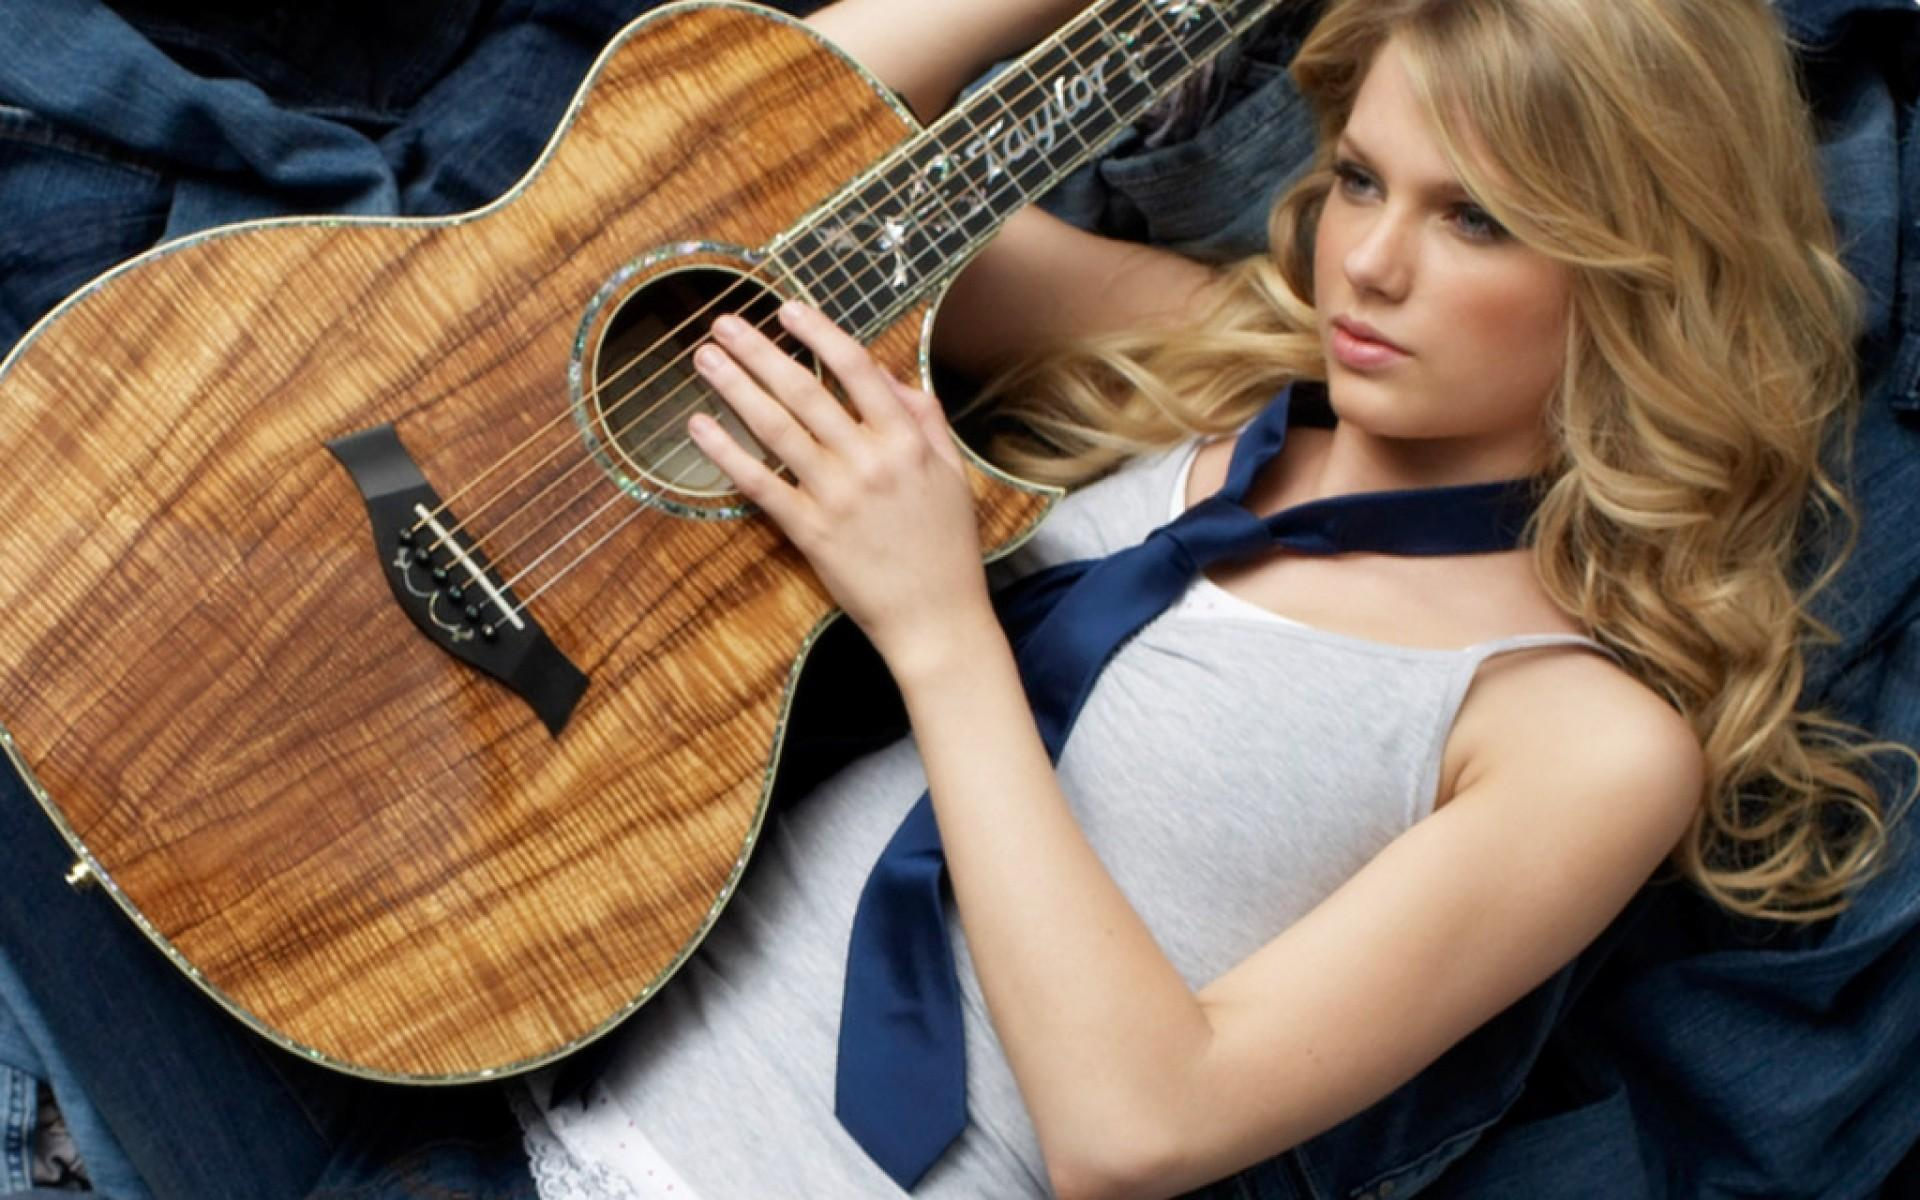 Taylor Swift Guitar wallpapers | Taylor Swift Guitar stock ...Taylor Swift Acoustic Guitar Wallpaper